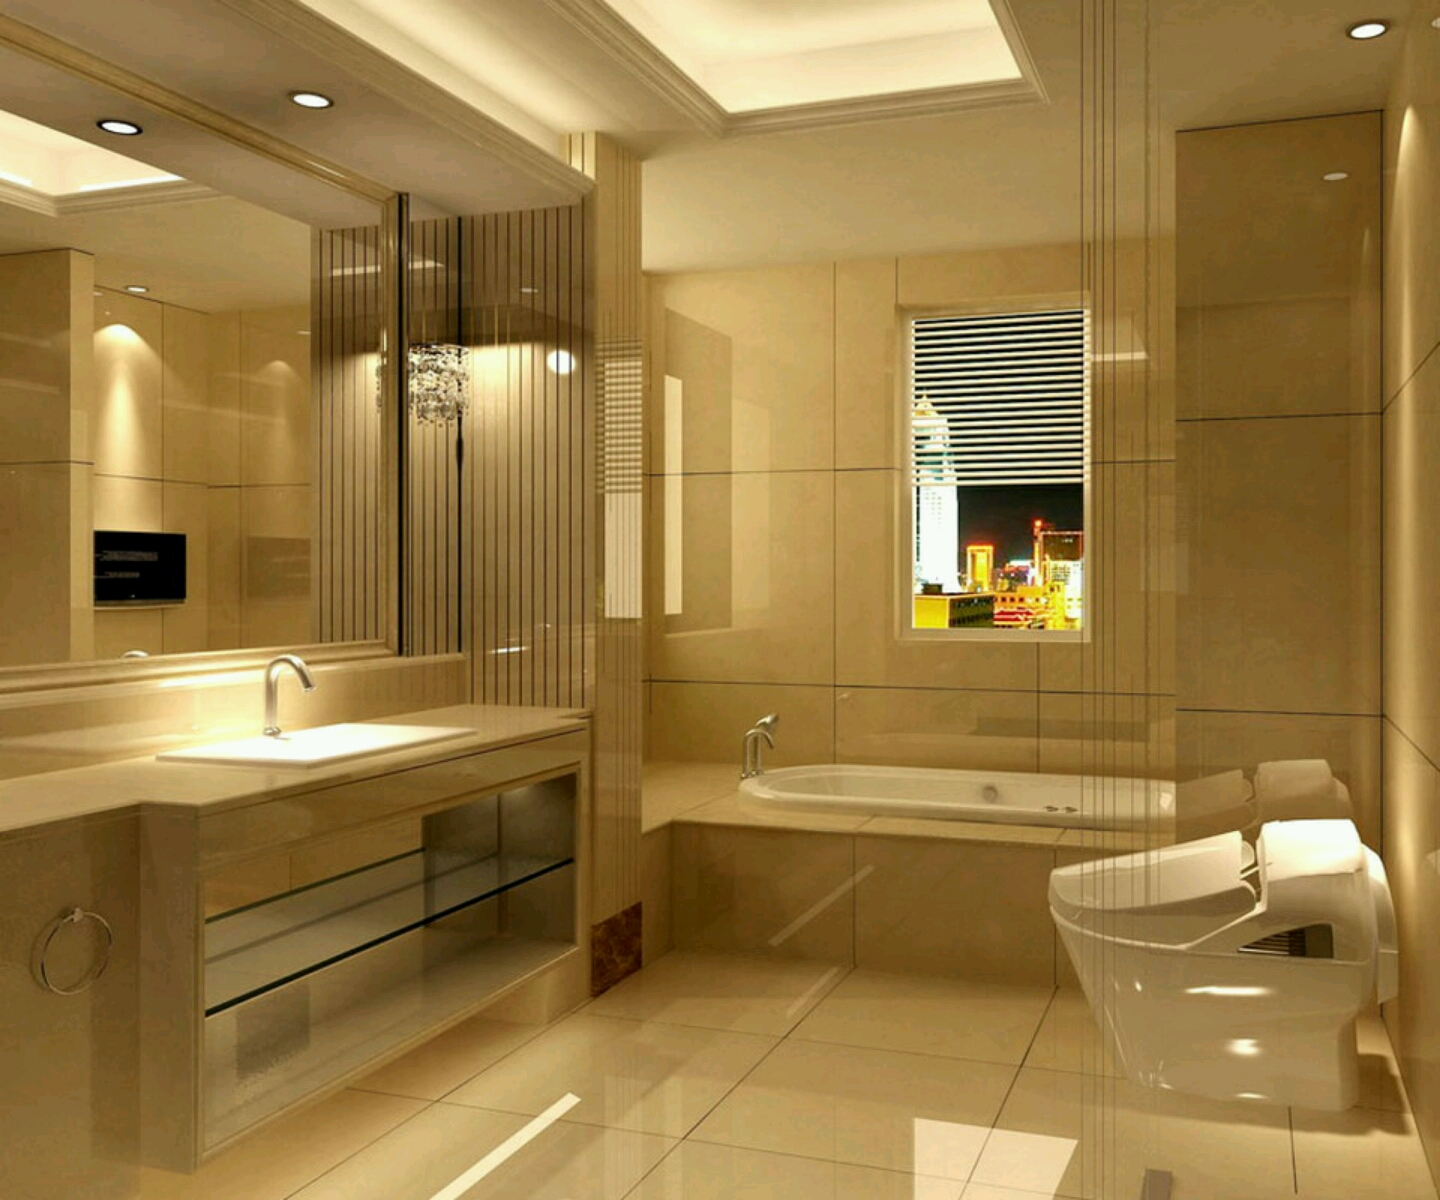 Modern bathrooms setting ideas furniture gallery Contemporary bathrooms